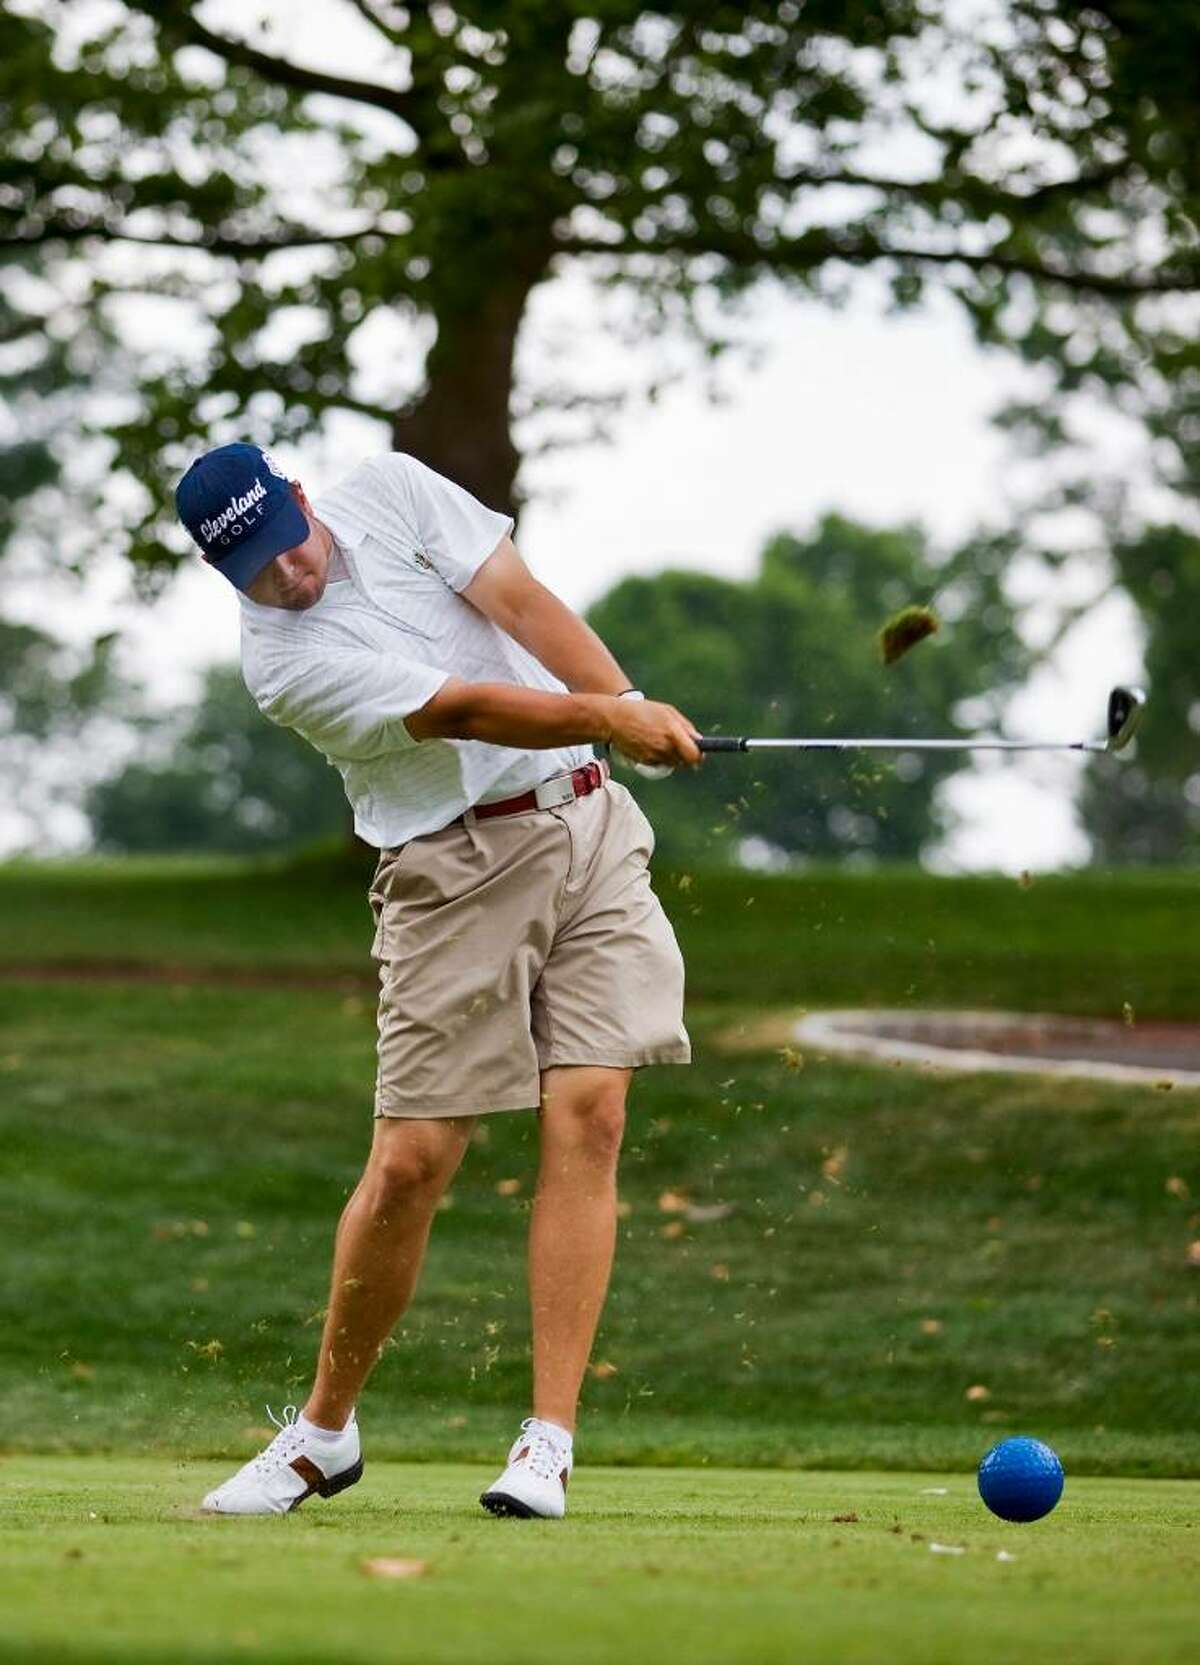 Mike Ballo Jr. drives the par three fourth hole at the 55th Ike Championship at Metropolis Country Club in White Plains, N.Y. Andrew Sullivan for The Advcoate/ Greenwich Time